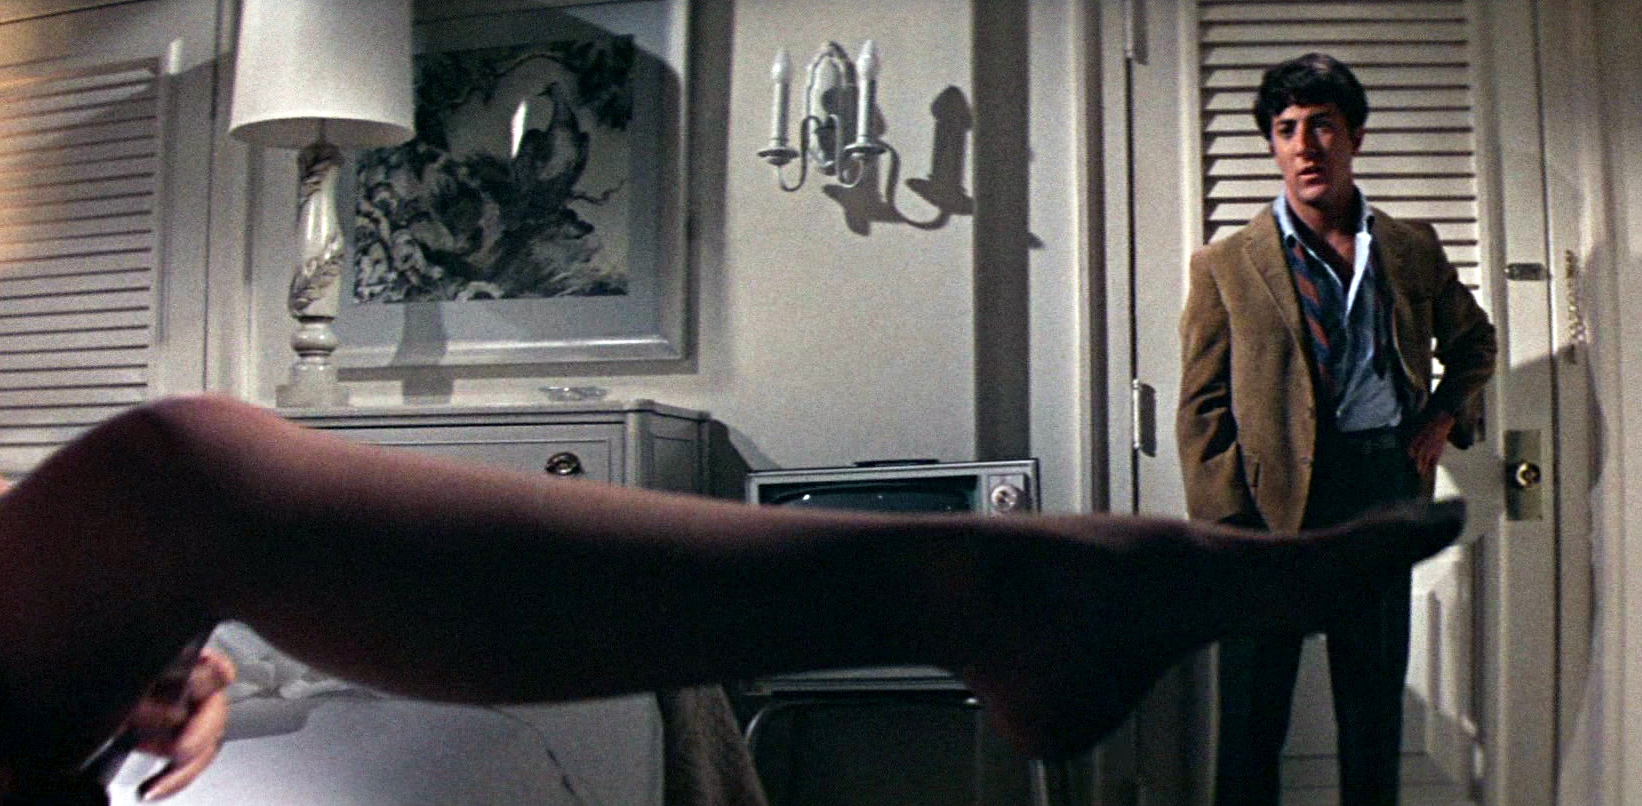 Essay On Why The Film The Graduate Still Matters